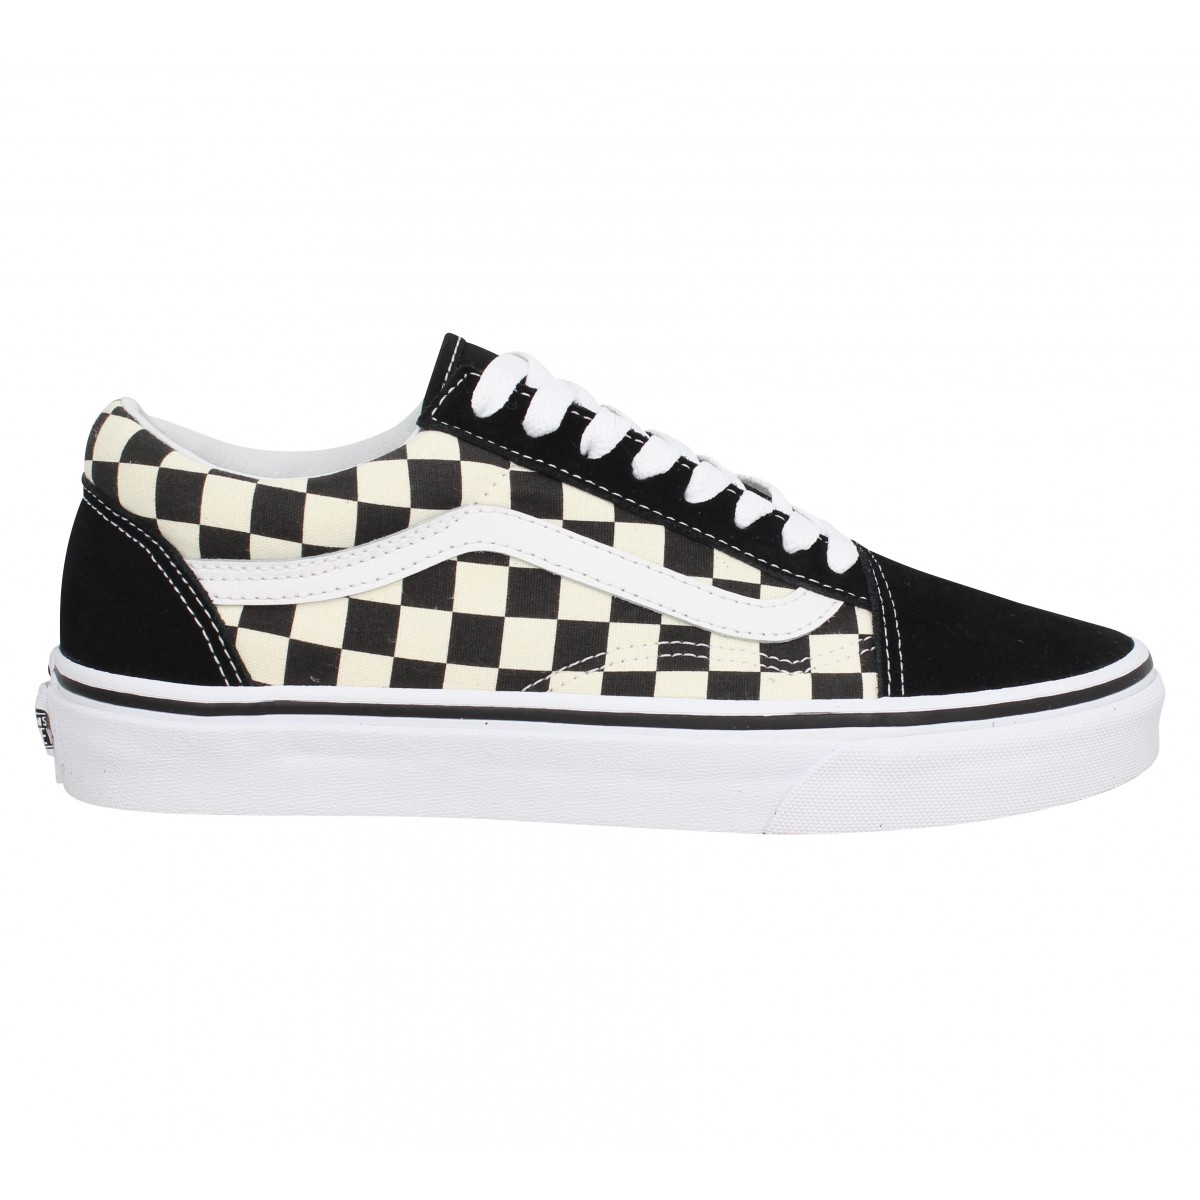 VANS Old Skool velours toile Damier